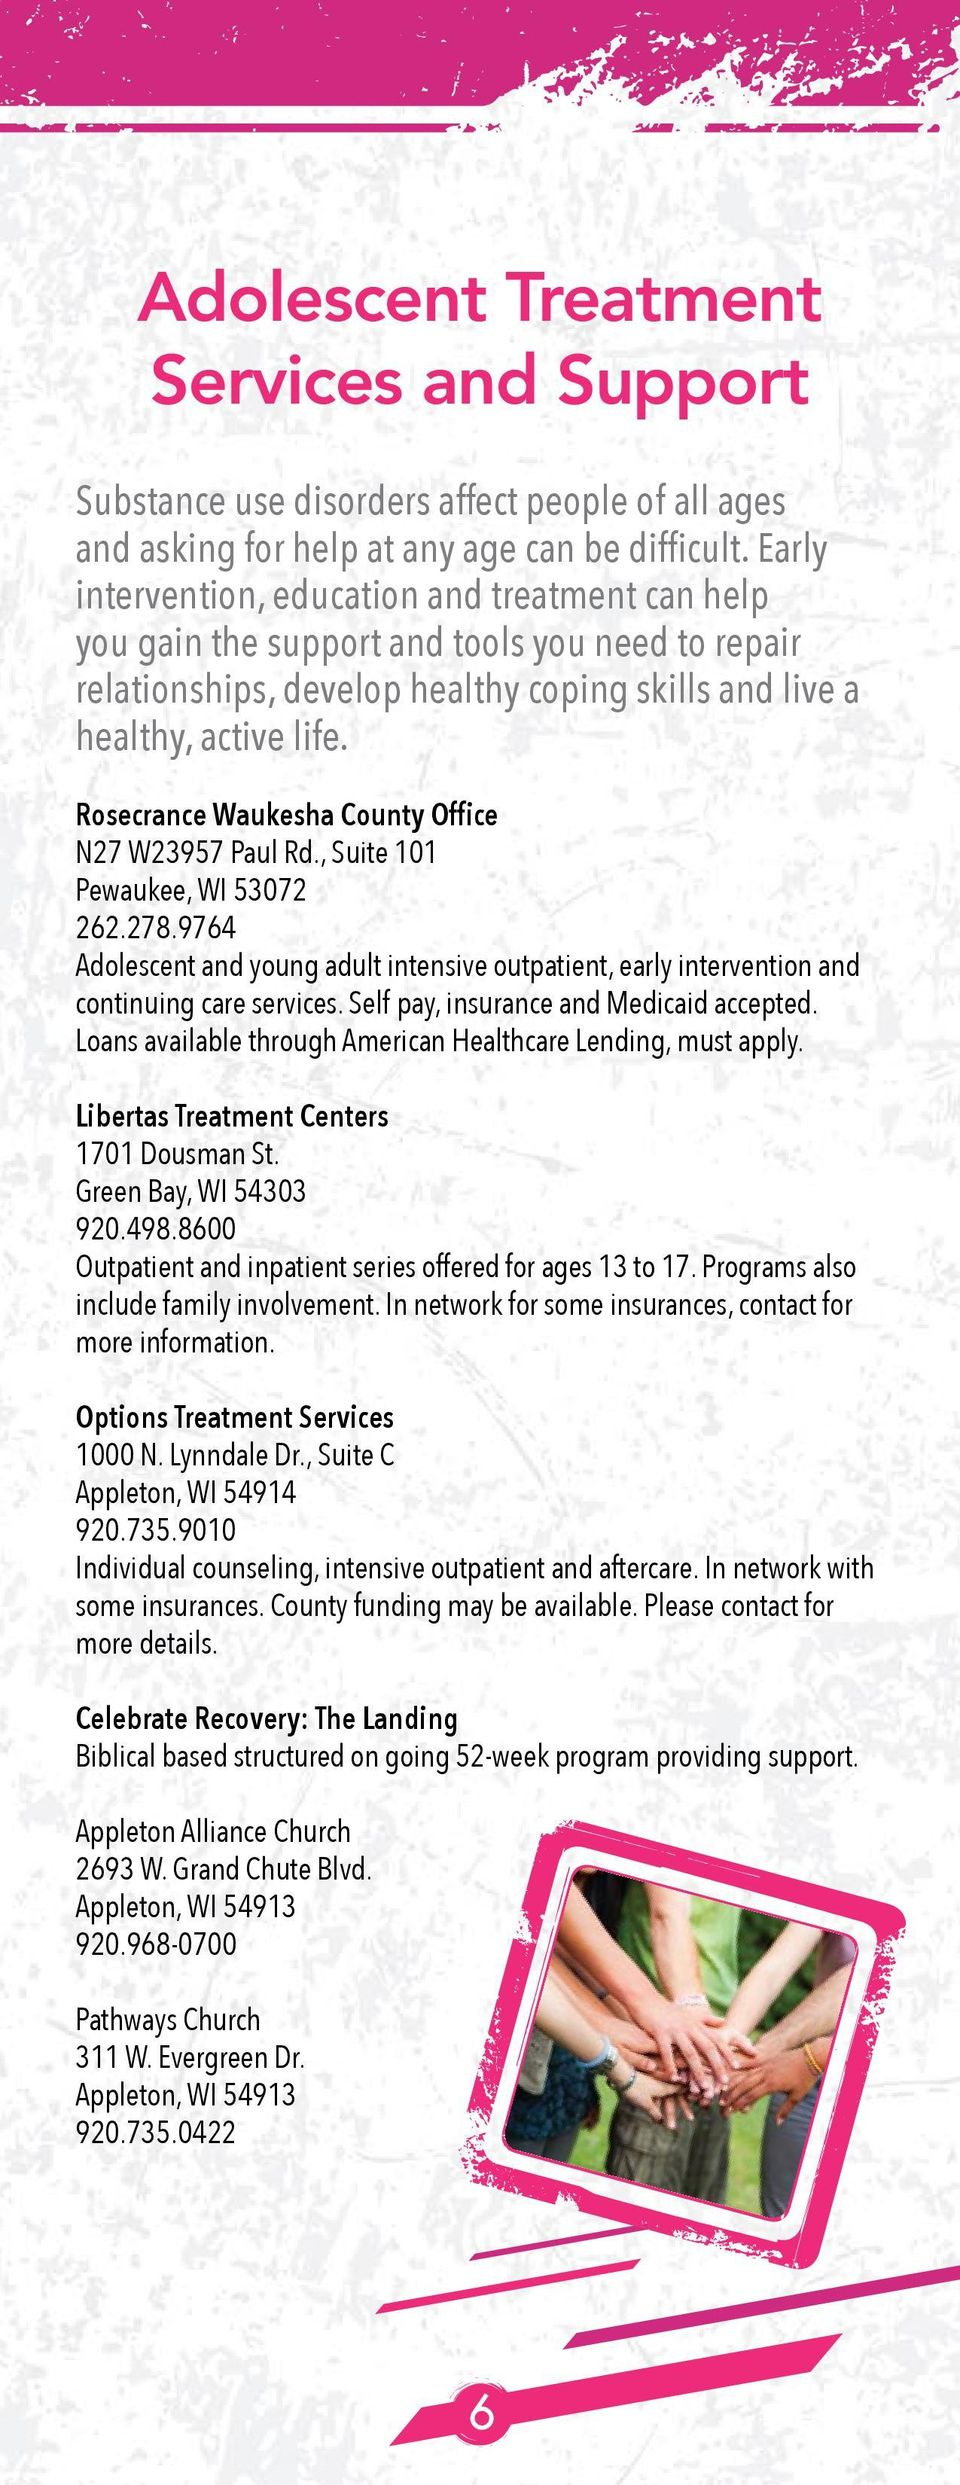 Rosecrance Waukesha County Office N27 W23957 Paul Rd., Suite 101 Pewaukee, WI 53072 262.278.9764 Adolescent and young adult intensive outpatient, early intervention and continuing care services.